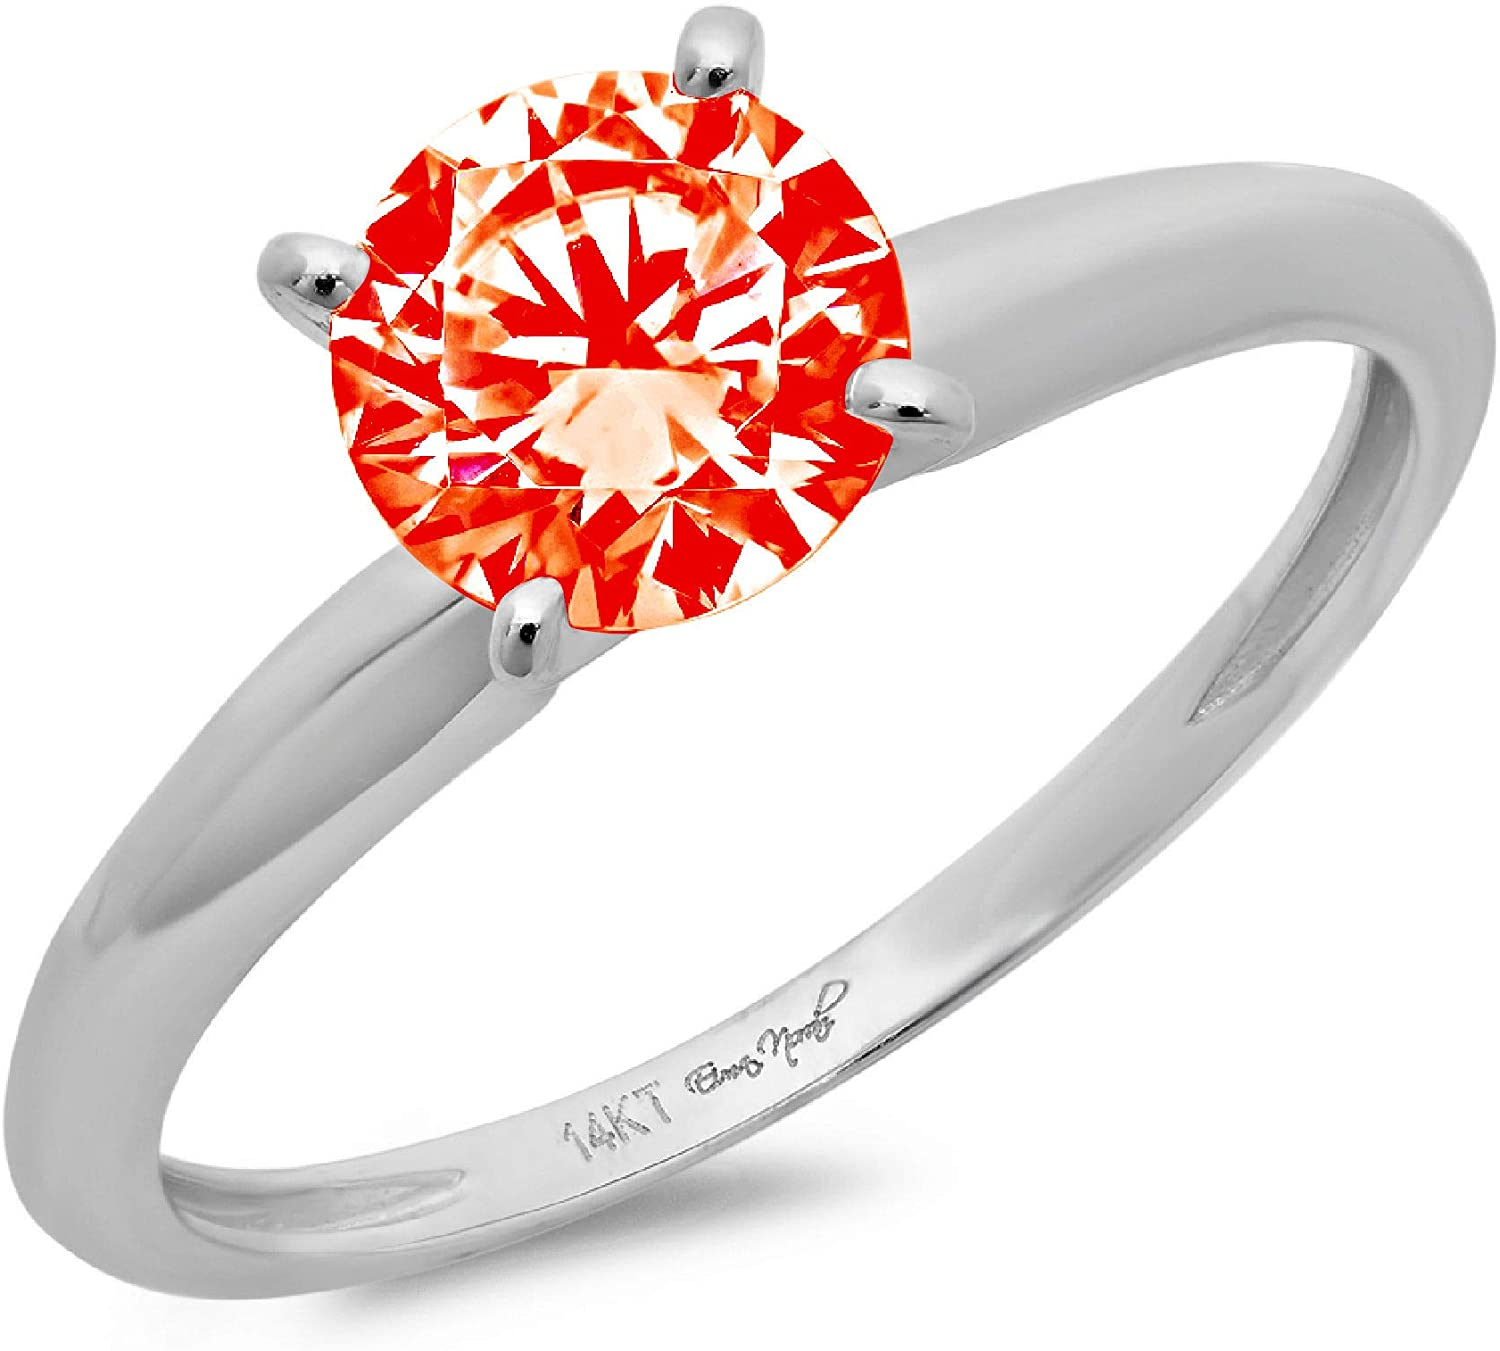 0.6 ct Brilliant Superlatite Round Cut Flawless Stunning Solitaire Simul Choice Red